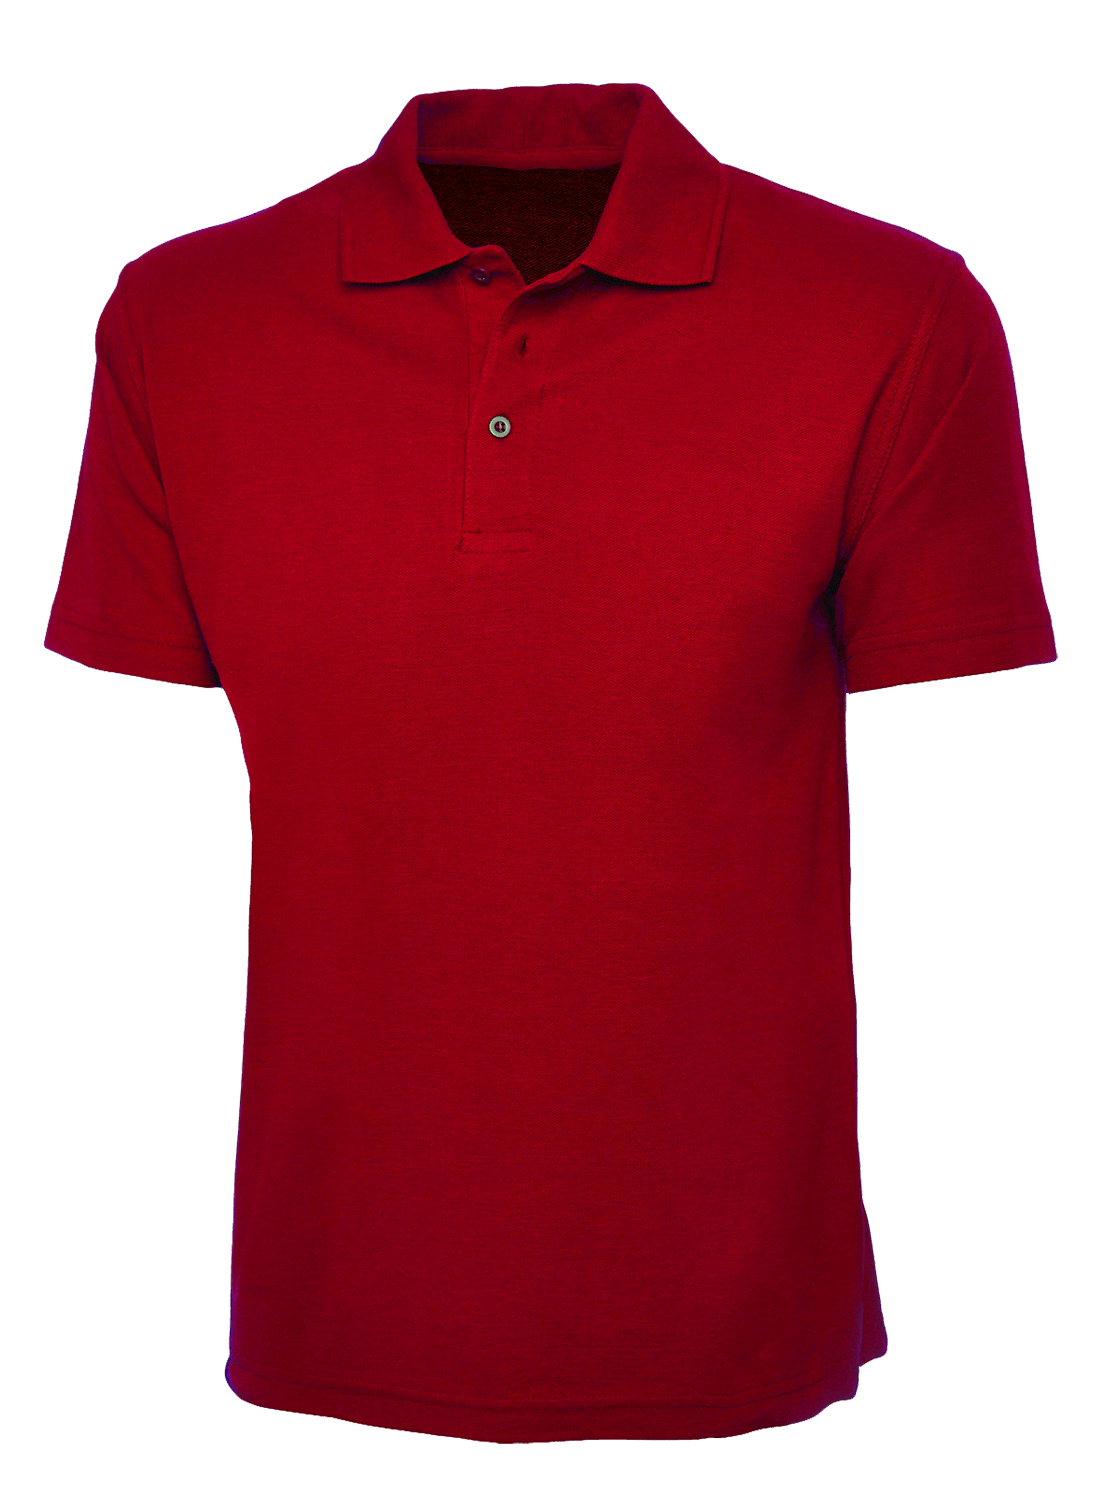 Part of The Official St Andrews Links Tartan Collection this plain red polo shirt made by Donald Ross features the St Andrews Links logo on the left chest in navy. This shirt is made from % Polyester.